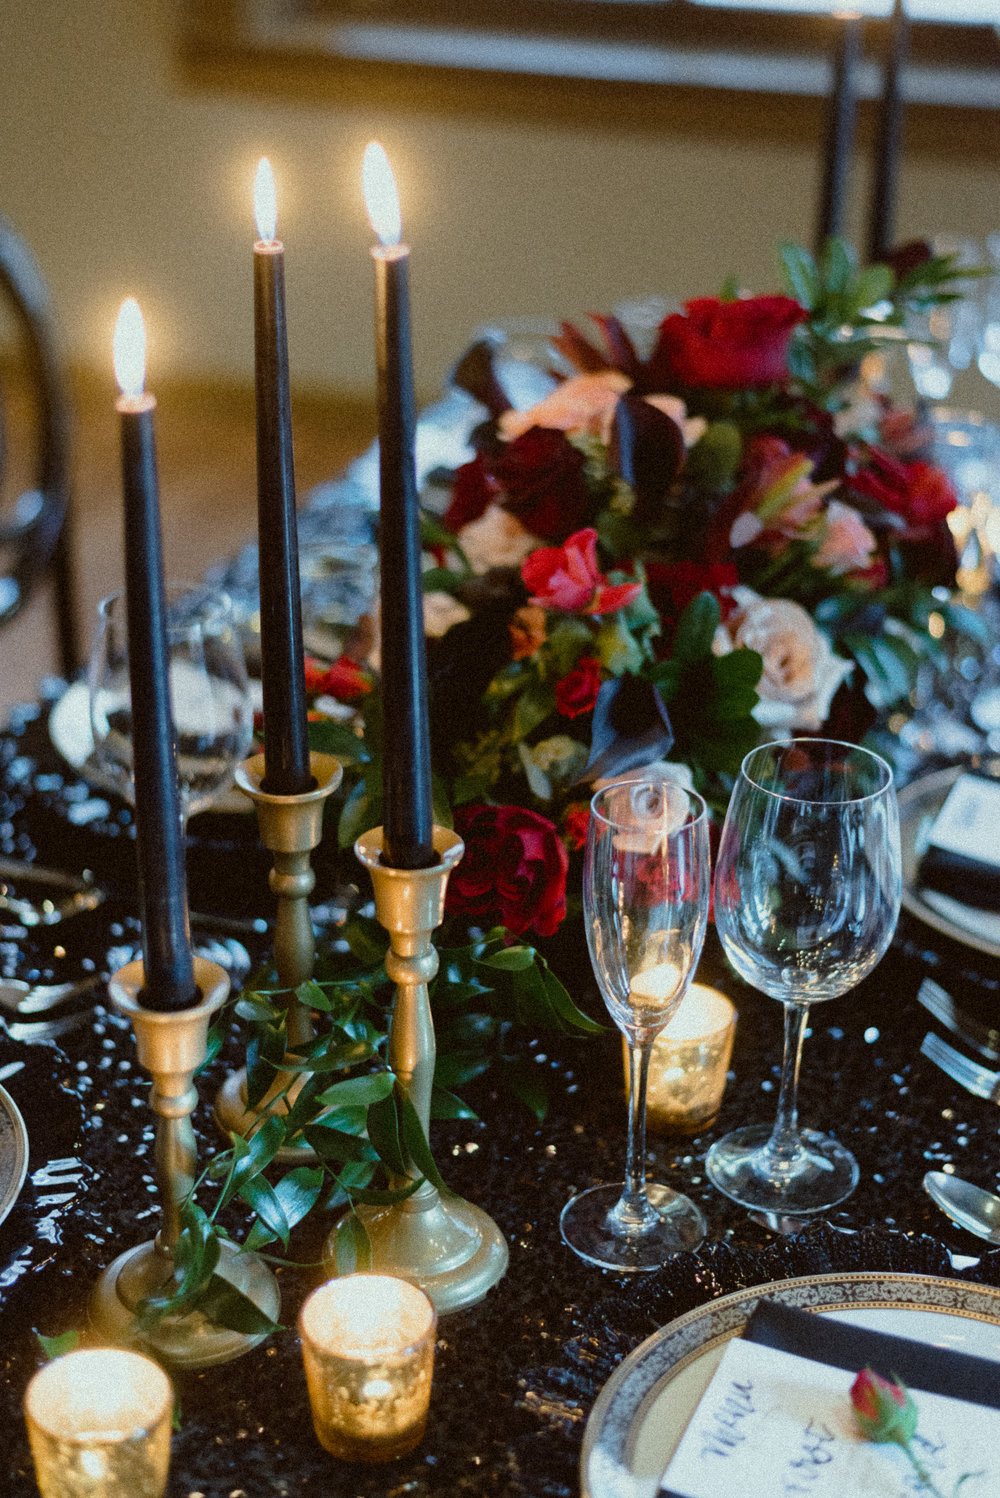 B RITTANY BAYS PHOTOGRAPHY | BLOSSOMS WEDDINGS CINCINNATI | BACKSTAGE EVENT CENTER | BLACK AND RED WEDDING DECOR